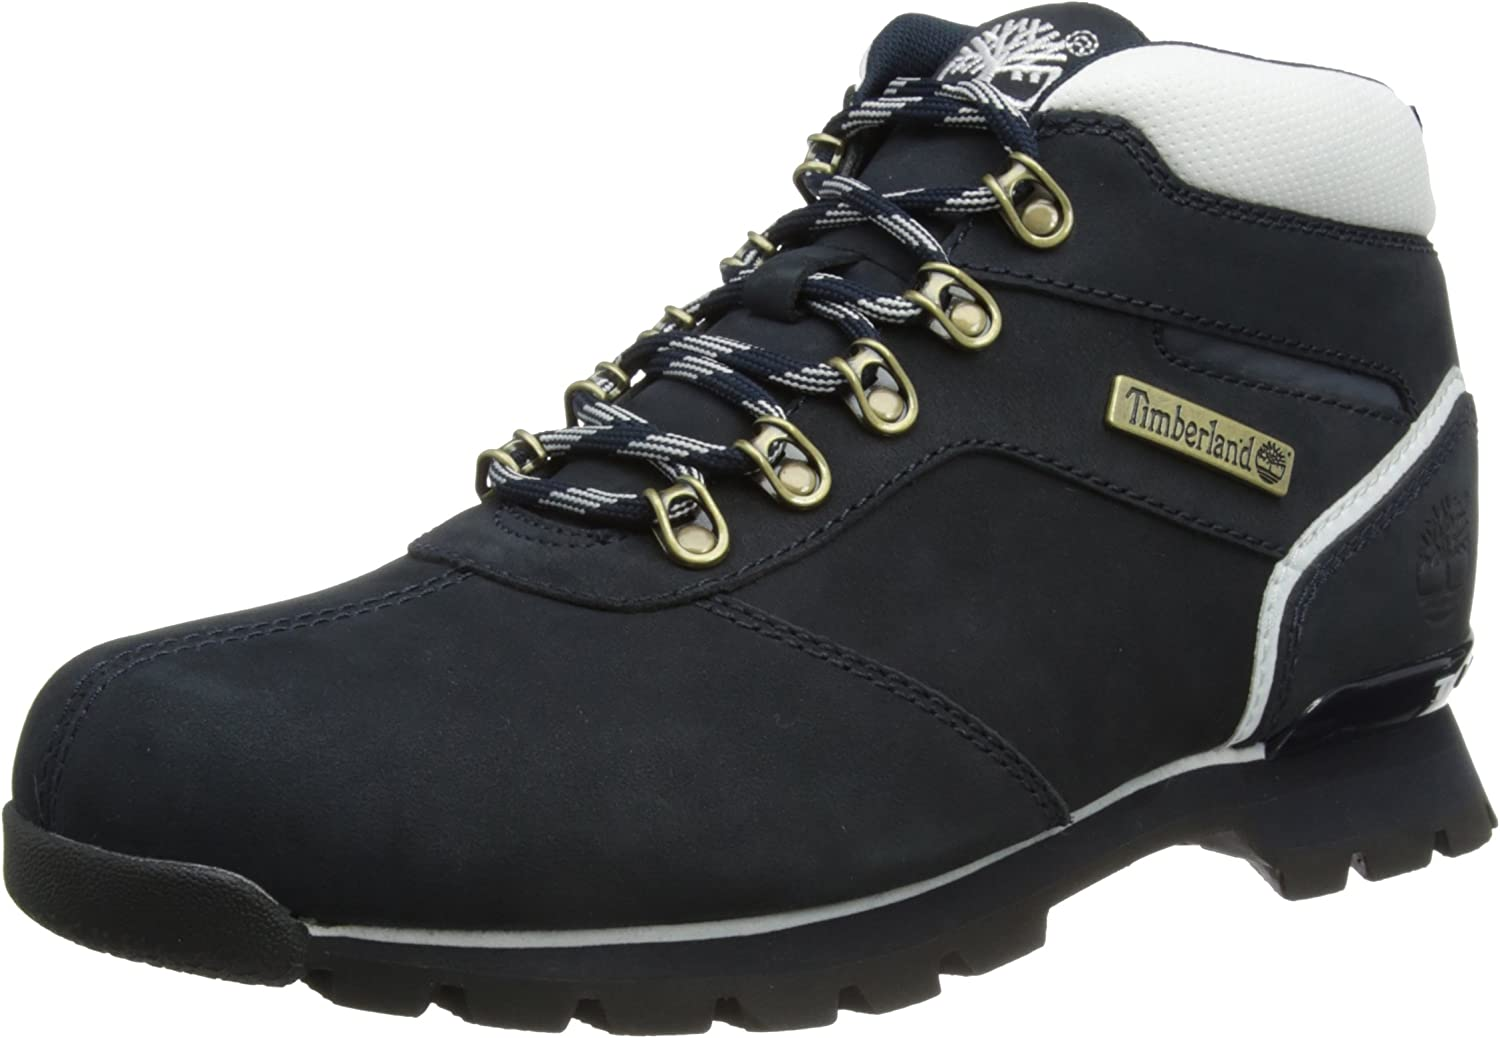 Timberland Mens Splitrock 2 Hiker Nubuck Leather Boots